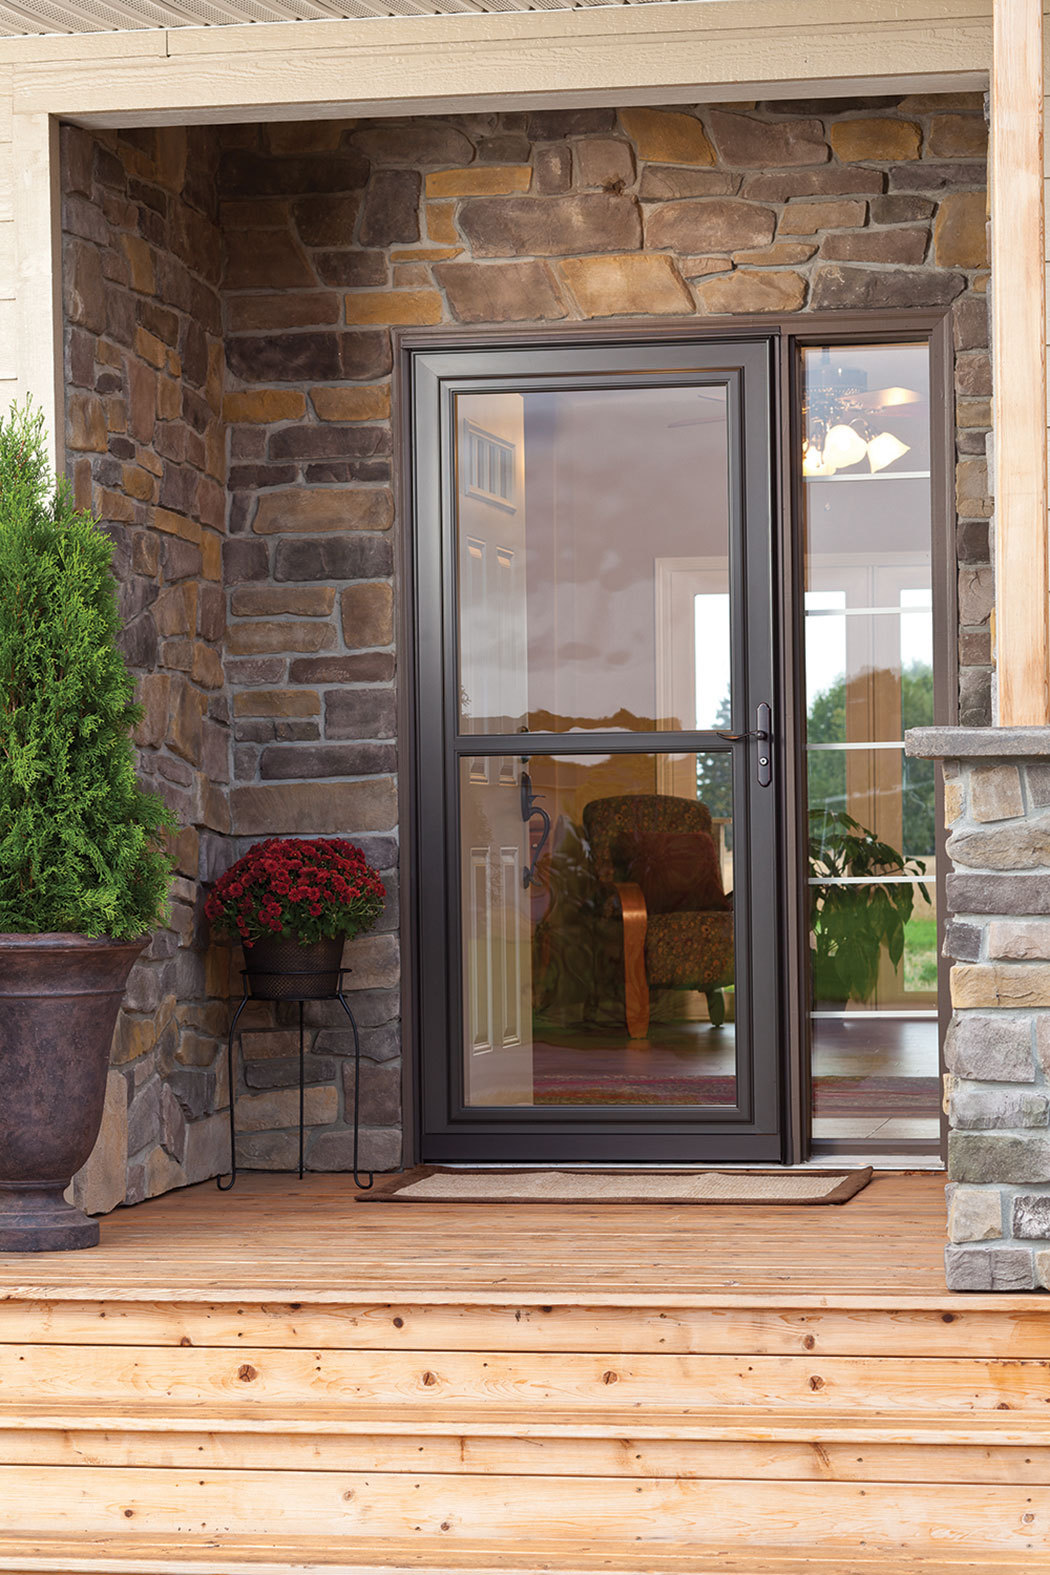 Waudena Millwork Announces Innovative Ready Install Program; Matches Fully-Prepped LARSON Storm Doors with Entry Doors to Save Time | Business Wire & Waudena Millwork Announces Innovative Ready Install Program ... Pezcame.Com